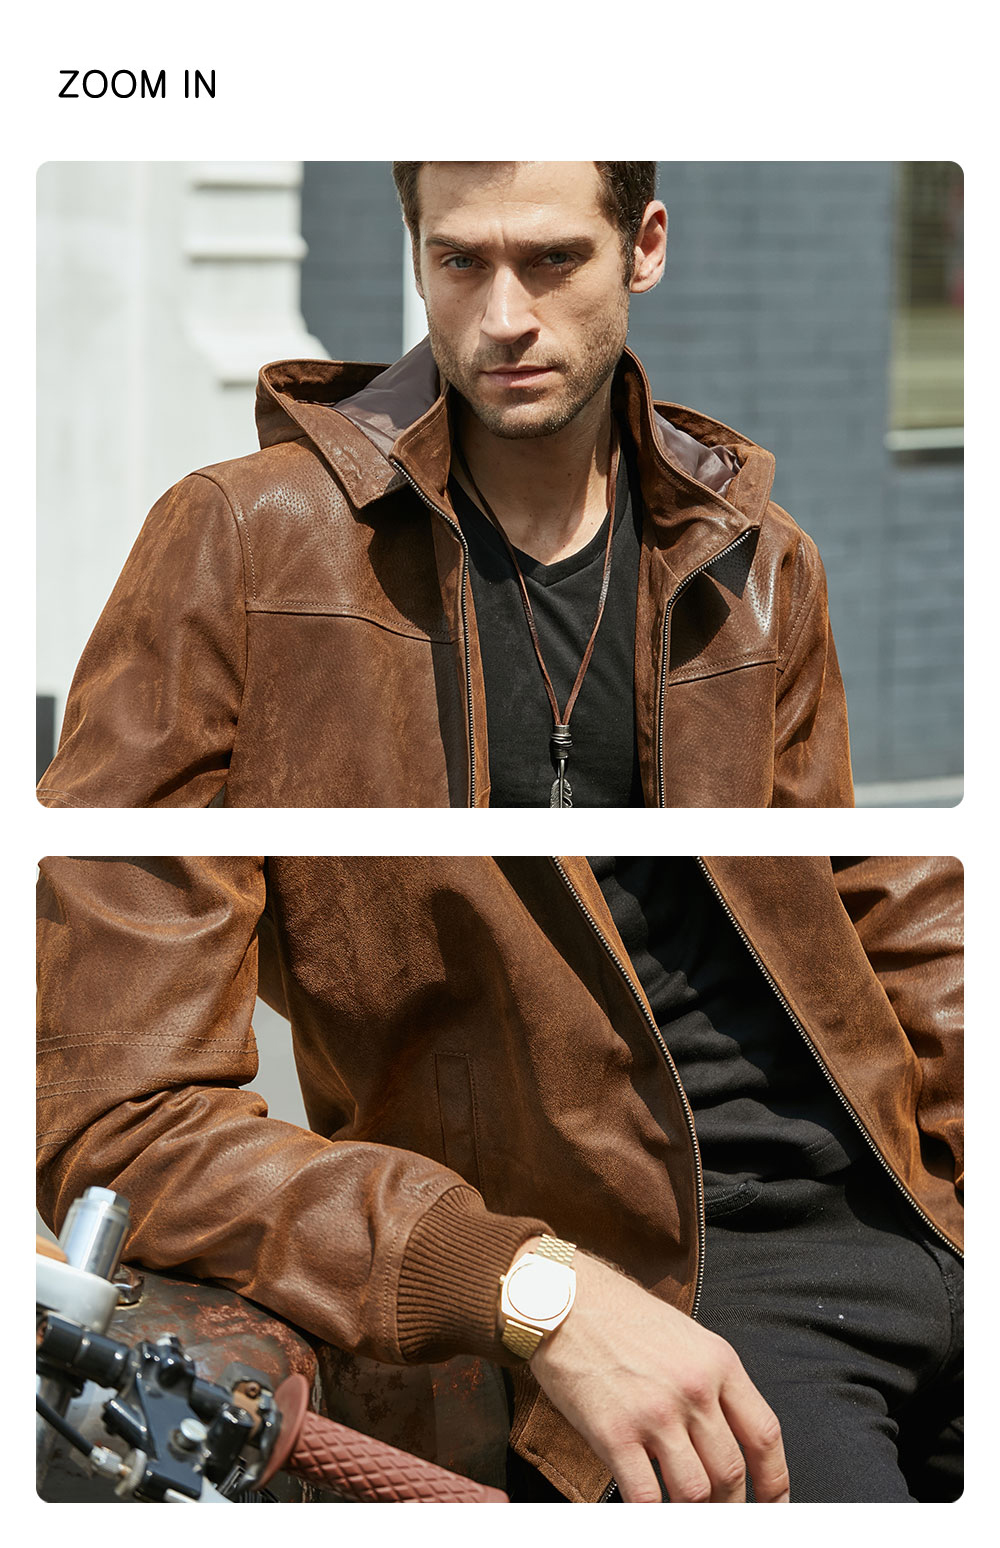 H1892f1abc57d4edeb0eb36dcbc3514fd2 New Men's Winter Jacket Made Of Genuine Pigskin Leather With A Hood, Pigskin Motorcycle Jacket, Natural Leather Jacket